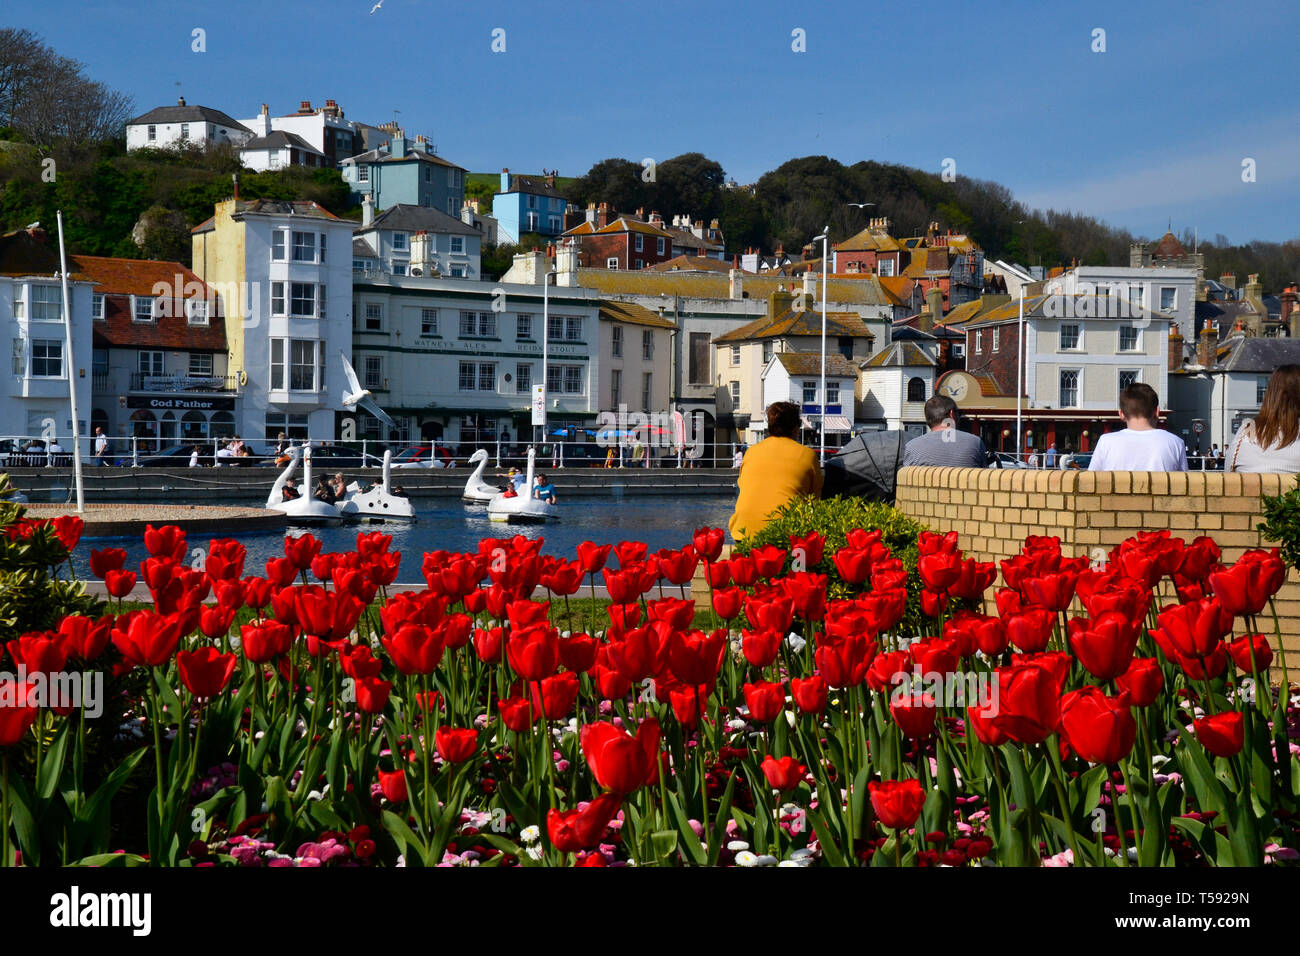 The Old Town Boating Lake with swan pedalos in Hastings, East Sussex, UK Stock Photo